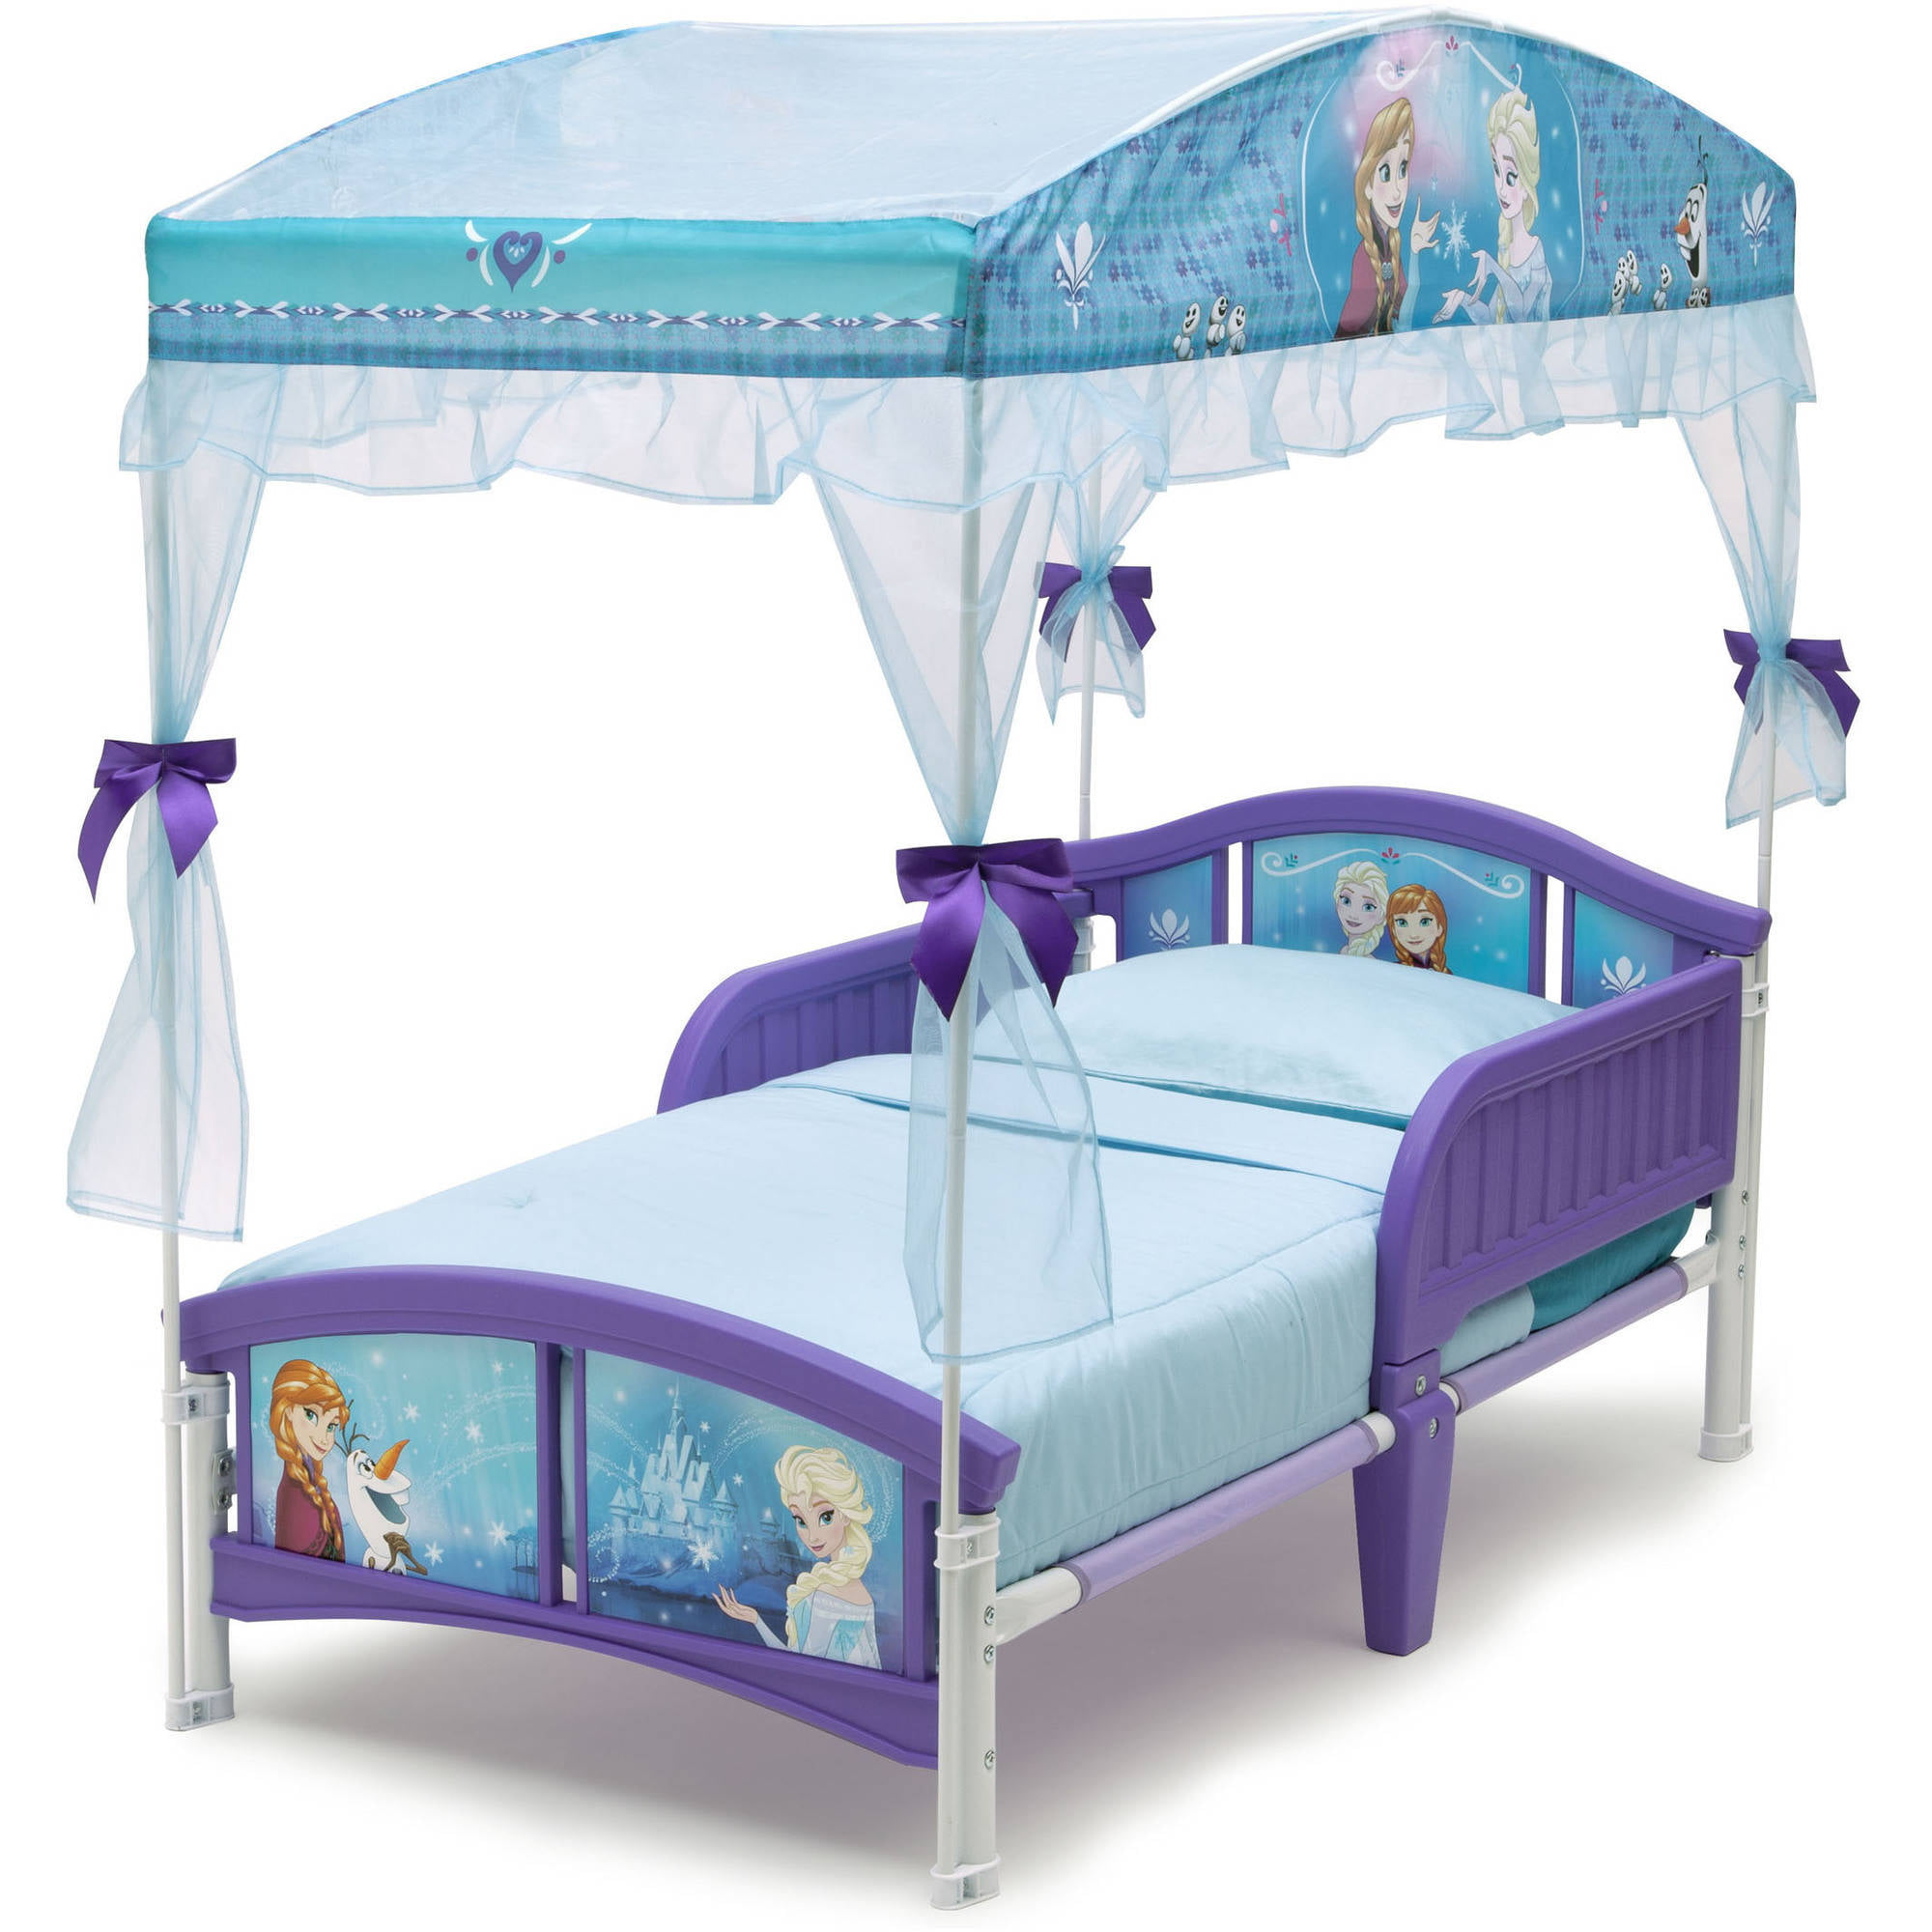 Frozen Plastic Toddler Bed With Canopy